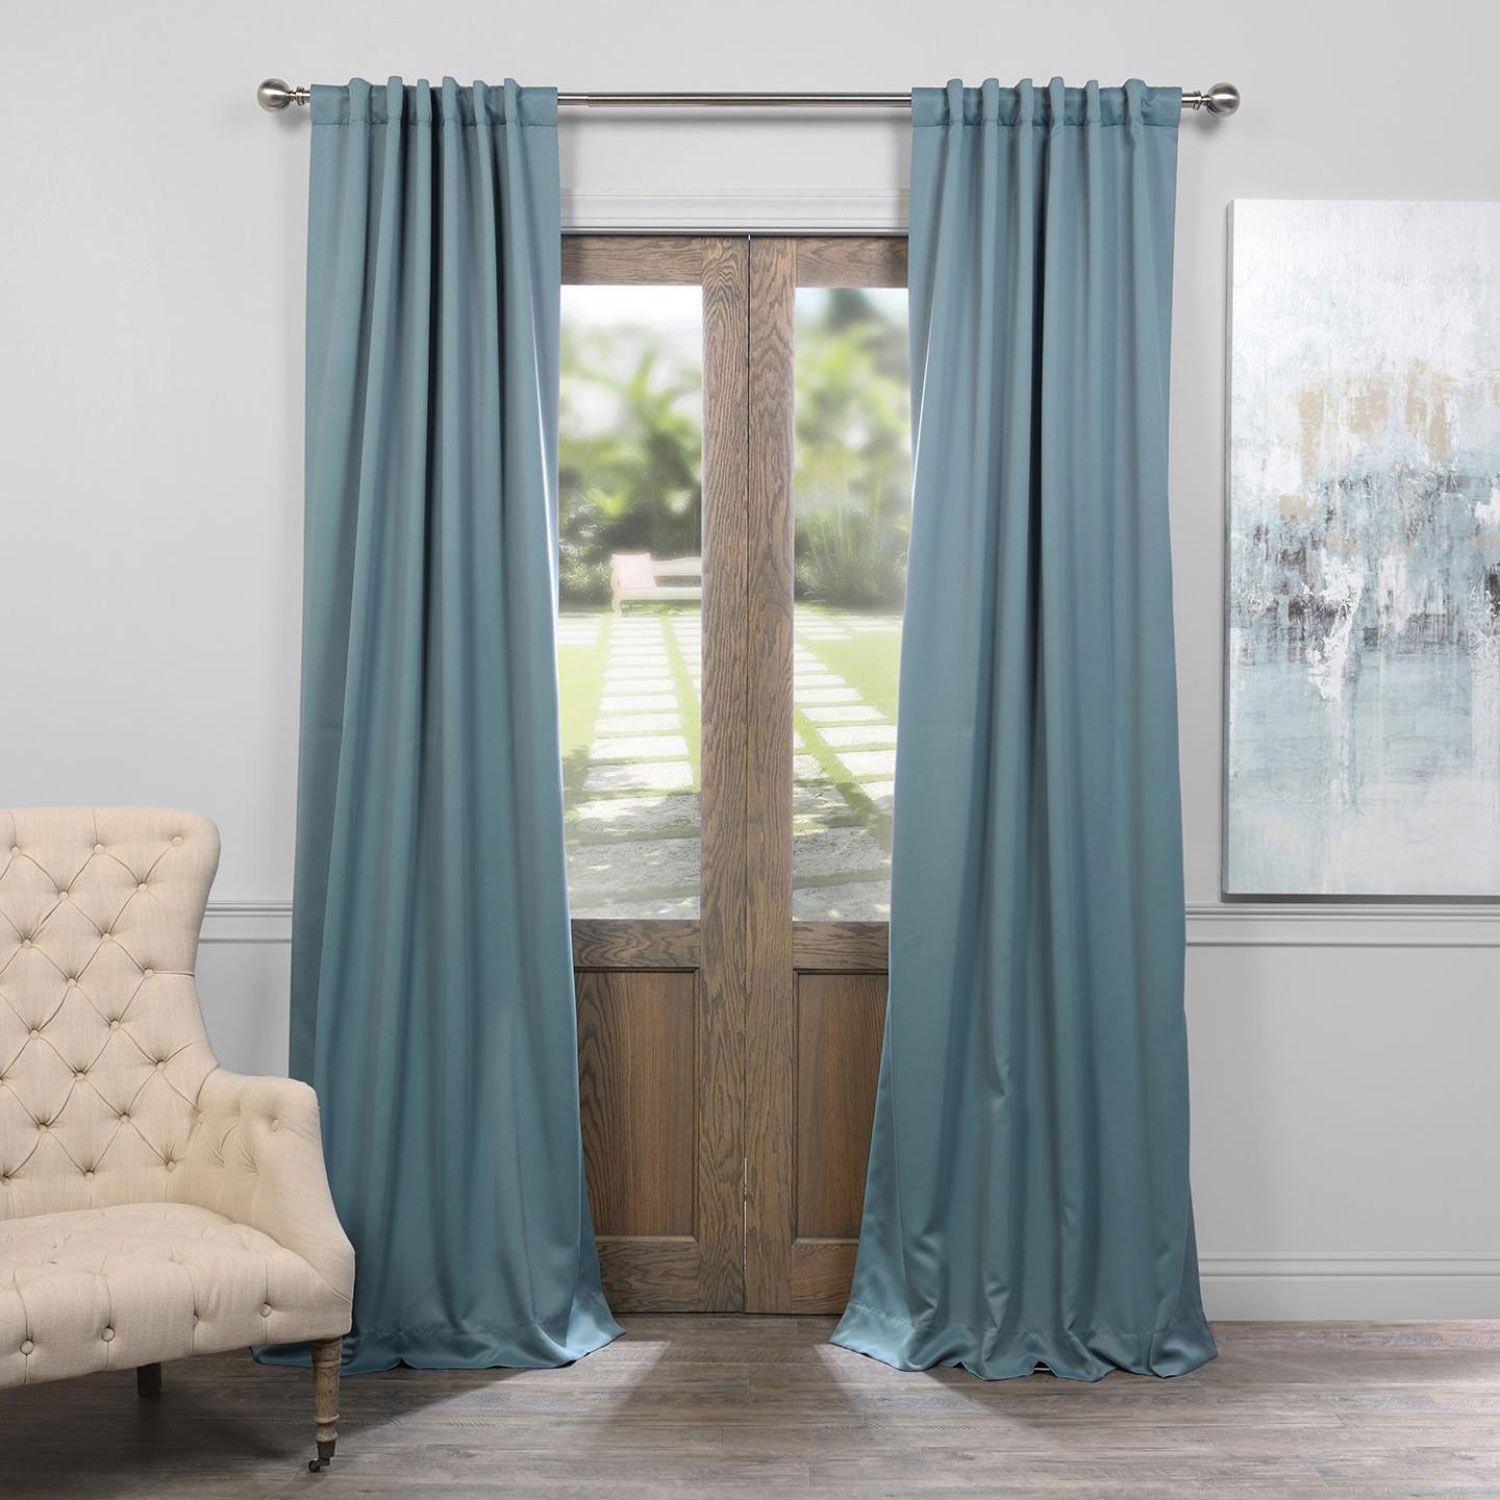 dragonfly teal 50 x 120 inch blackout curtain half price drapes panels u0026u2026